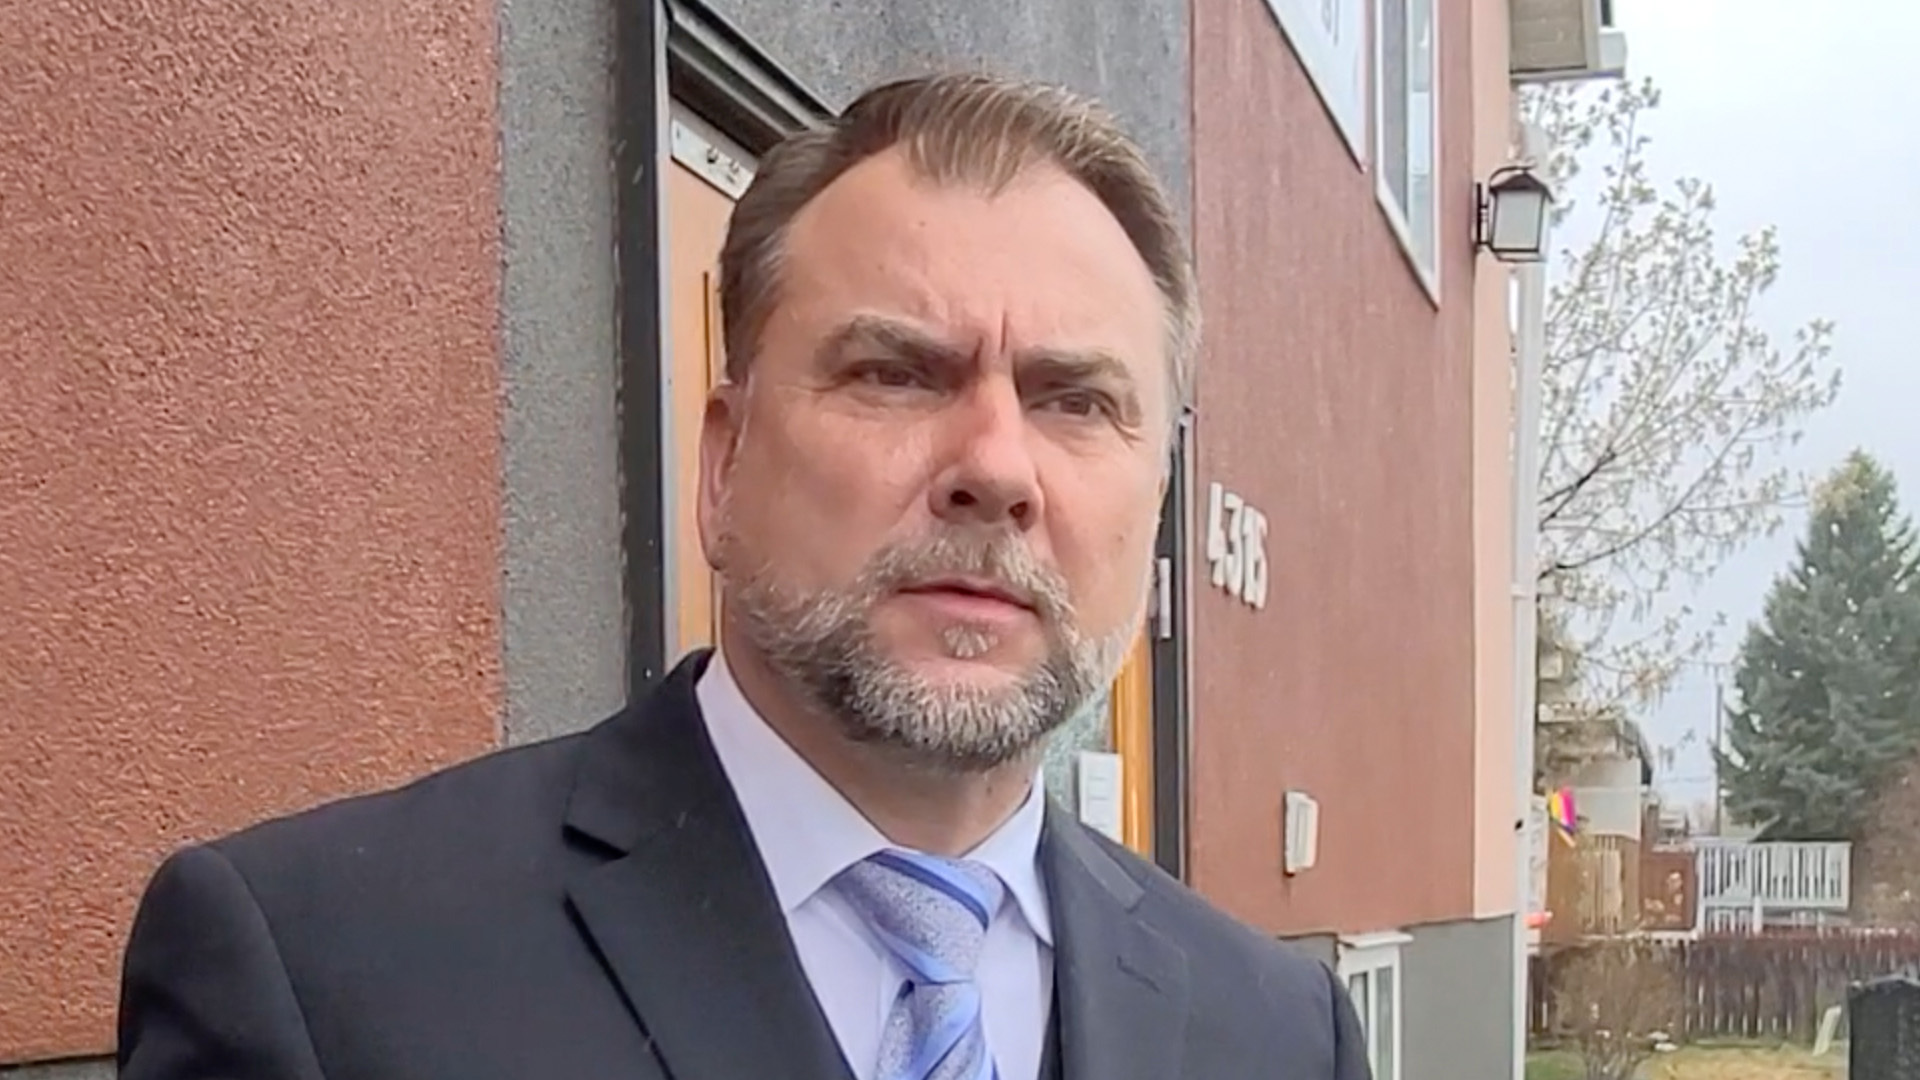 Pastor Art's incarceration hearing adjourned: Alberta Health Services was TOO SLOW to hand evidence to Pawlowski lawyer